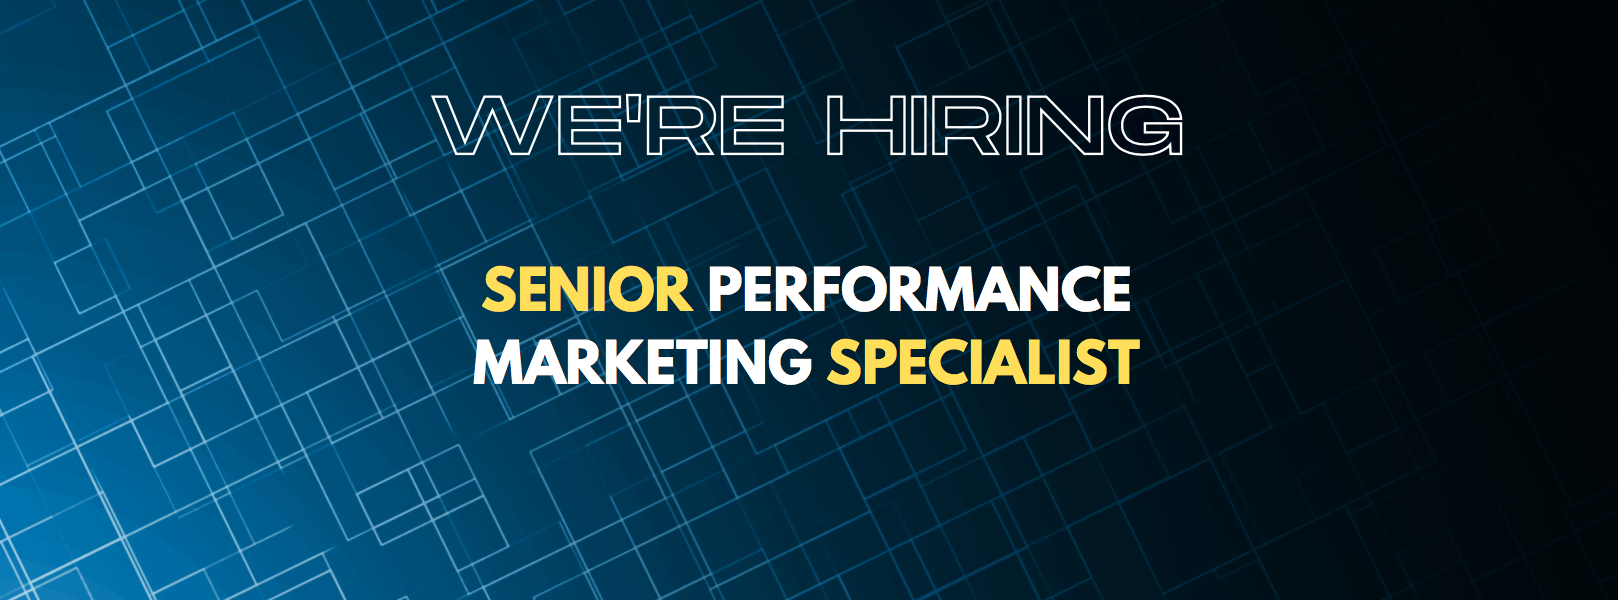 https://www.digitaltwentyfour.com/senior-performance-marketing-specialist-job-role/